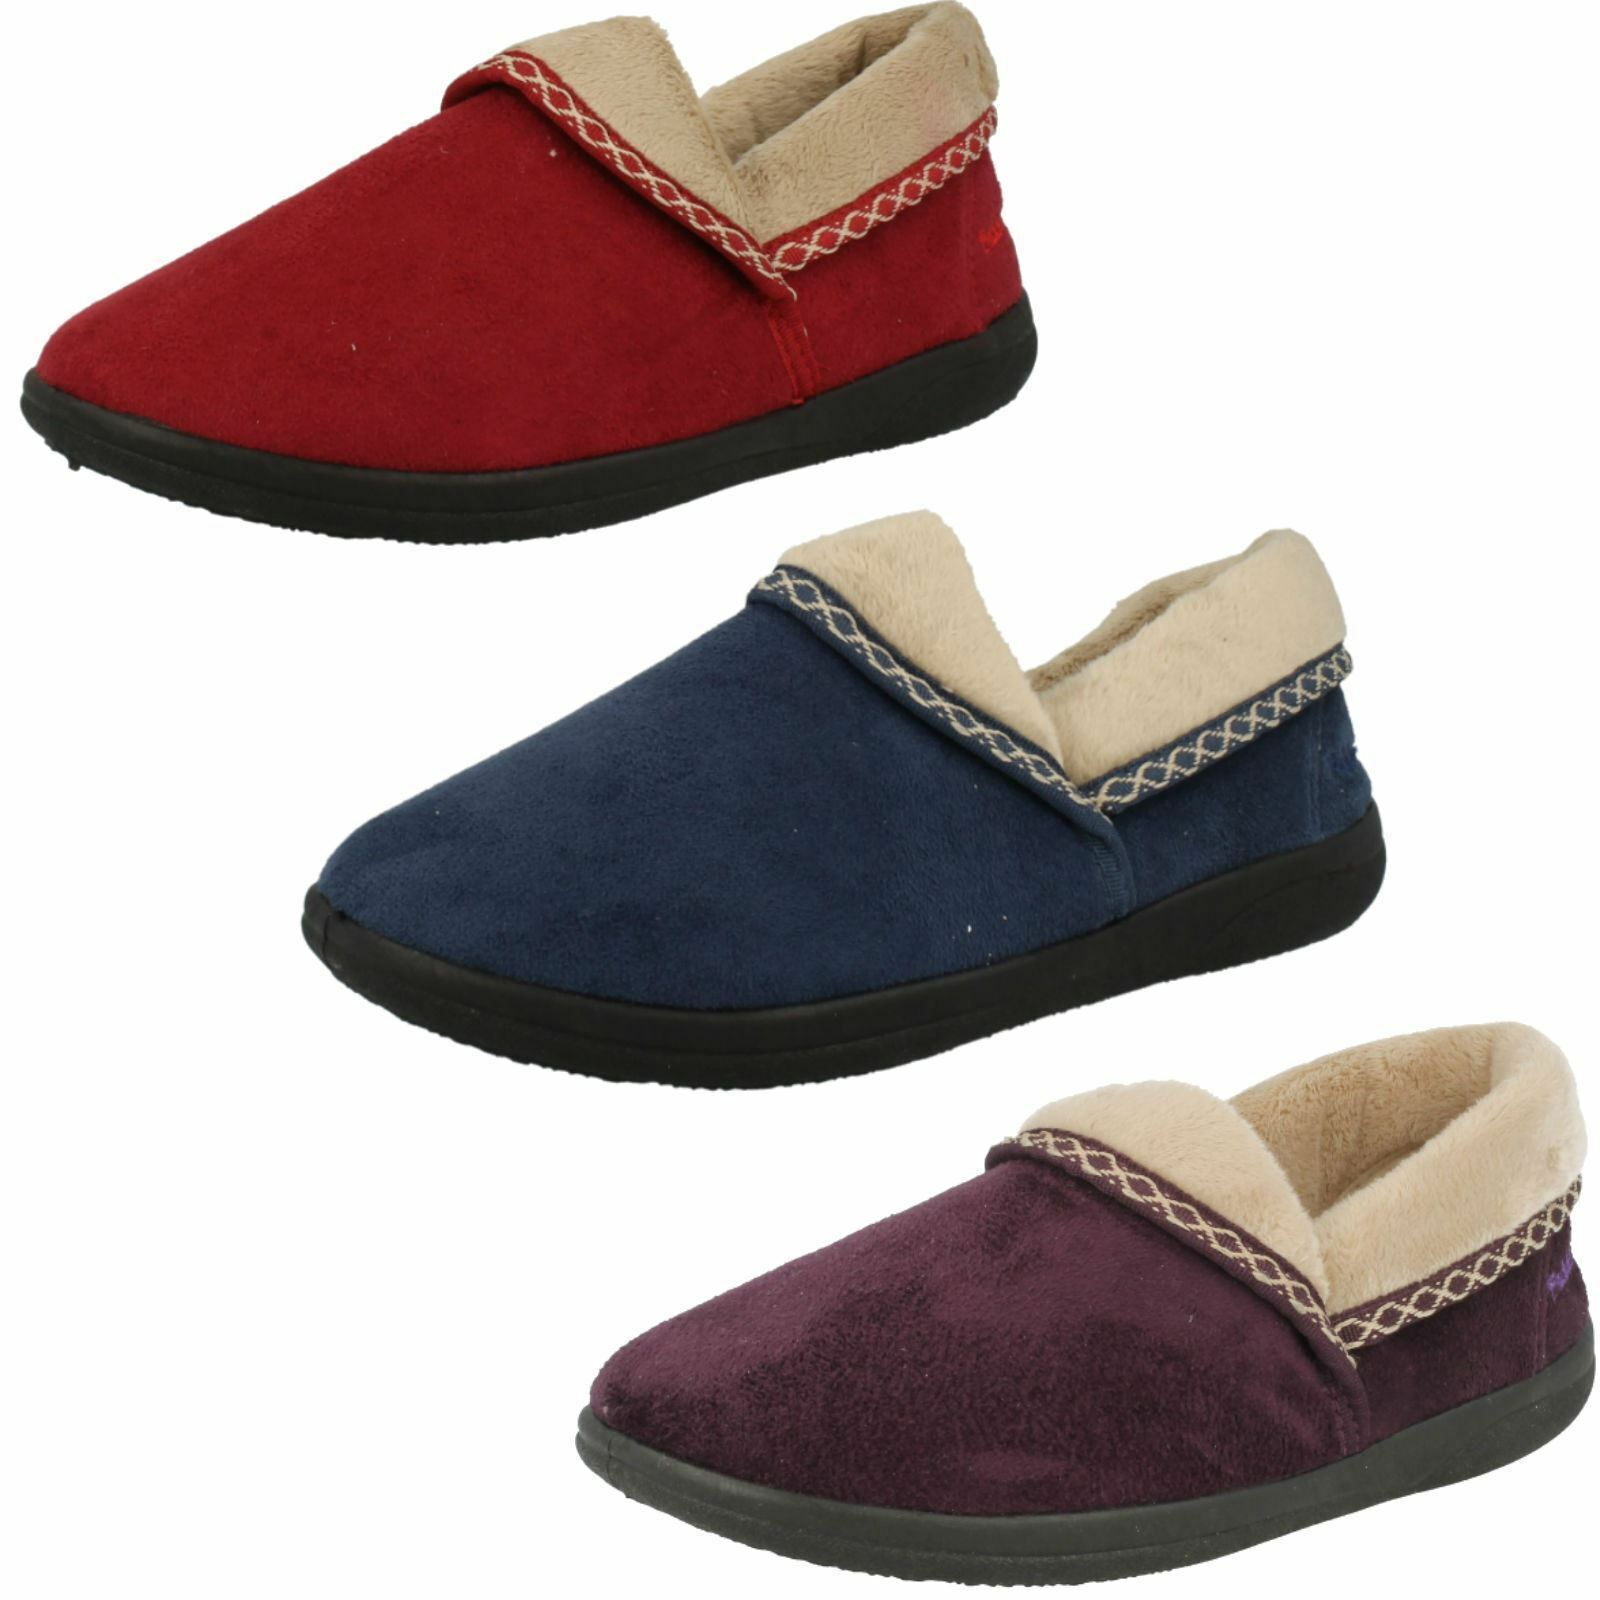 Man's/Woman's slippers-mellow femmes Padders pied large slippers-mellow Man's/Woman's durable International choice Tide shoes list 324489